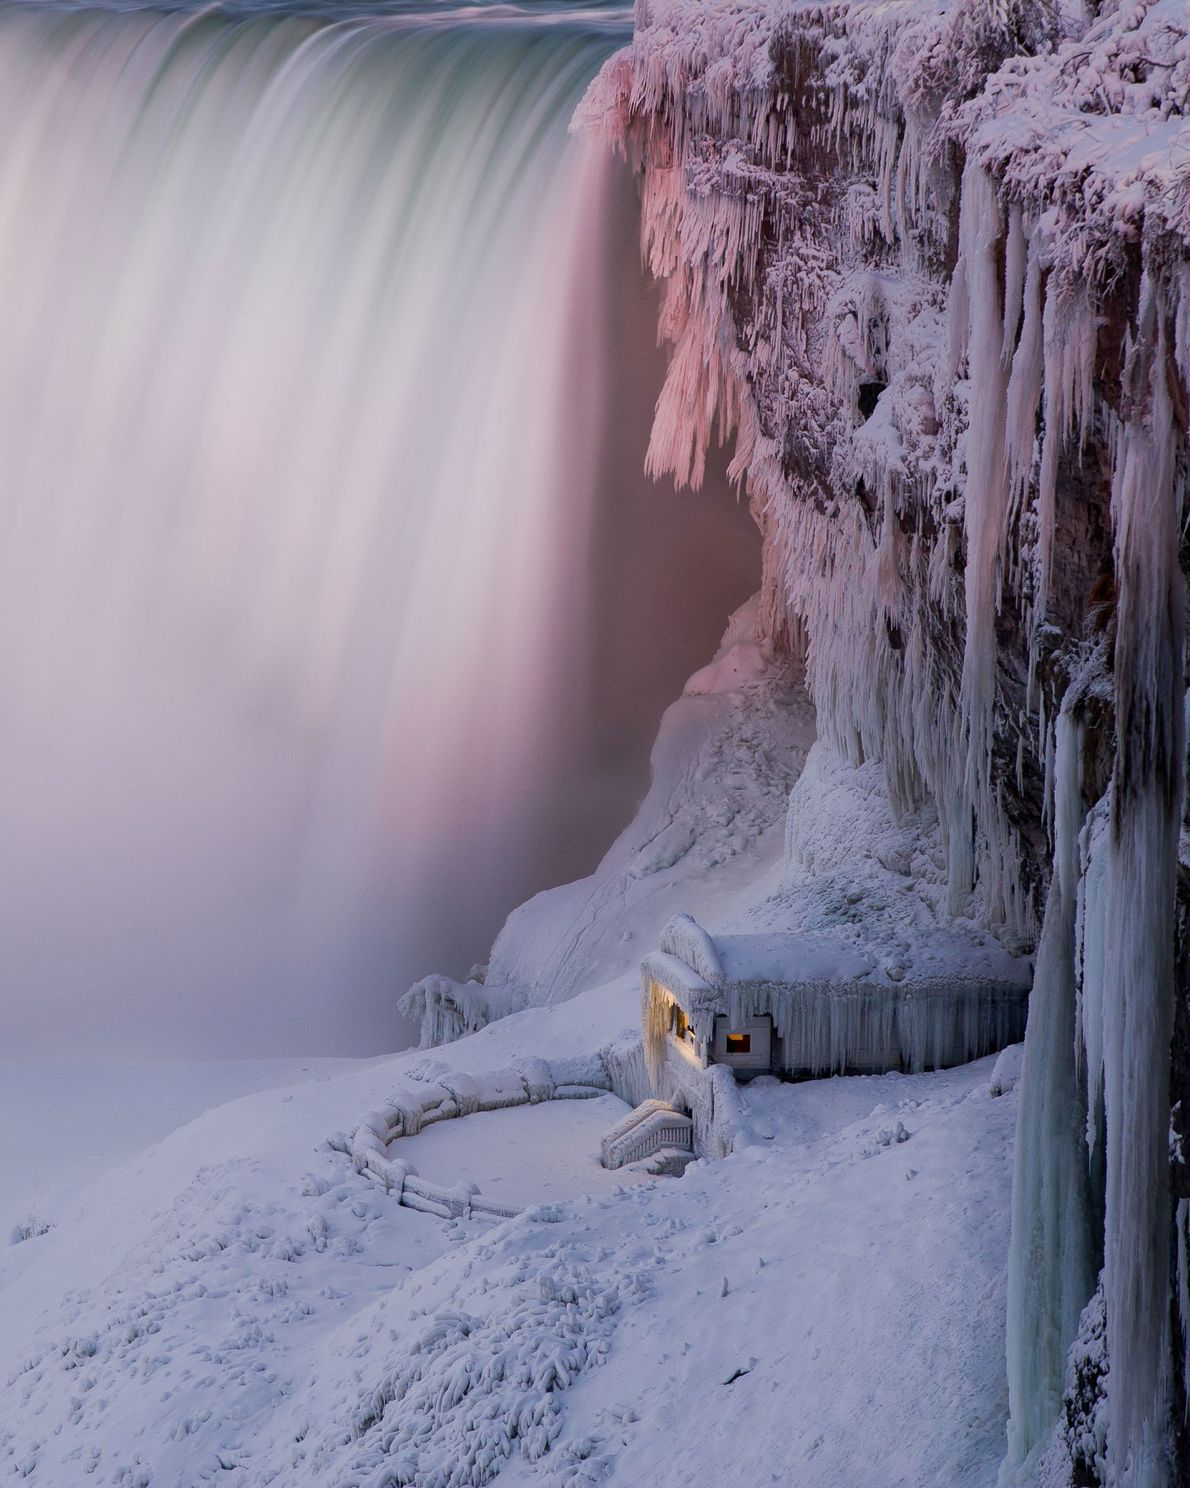 The famous falls (actually composed of three separate cataracts) has the highest flow rate in North ...